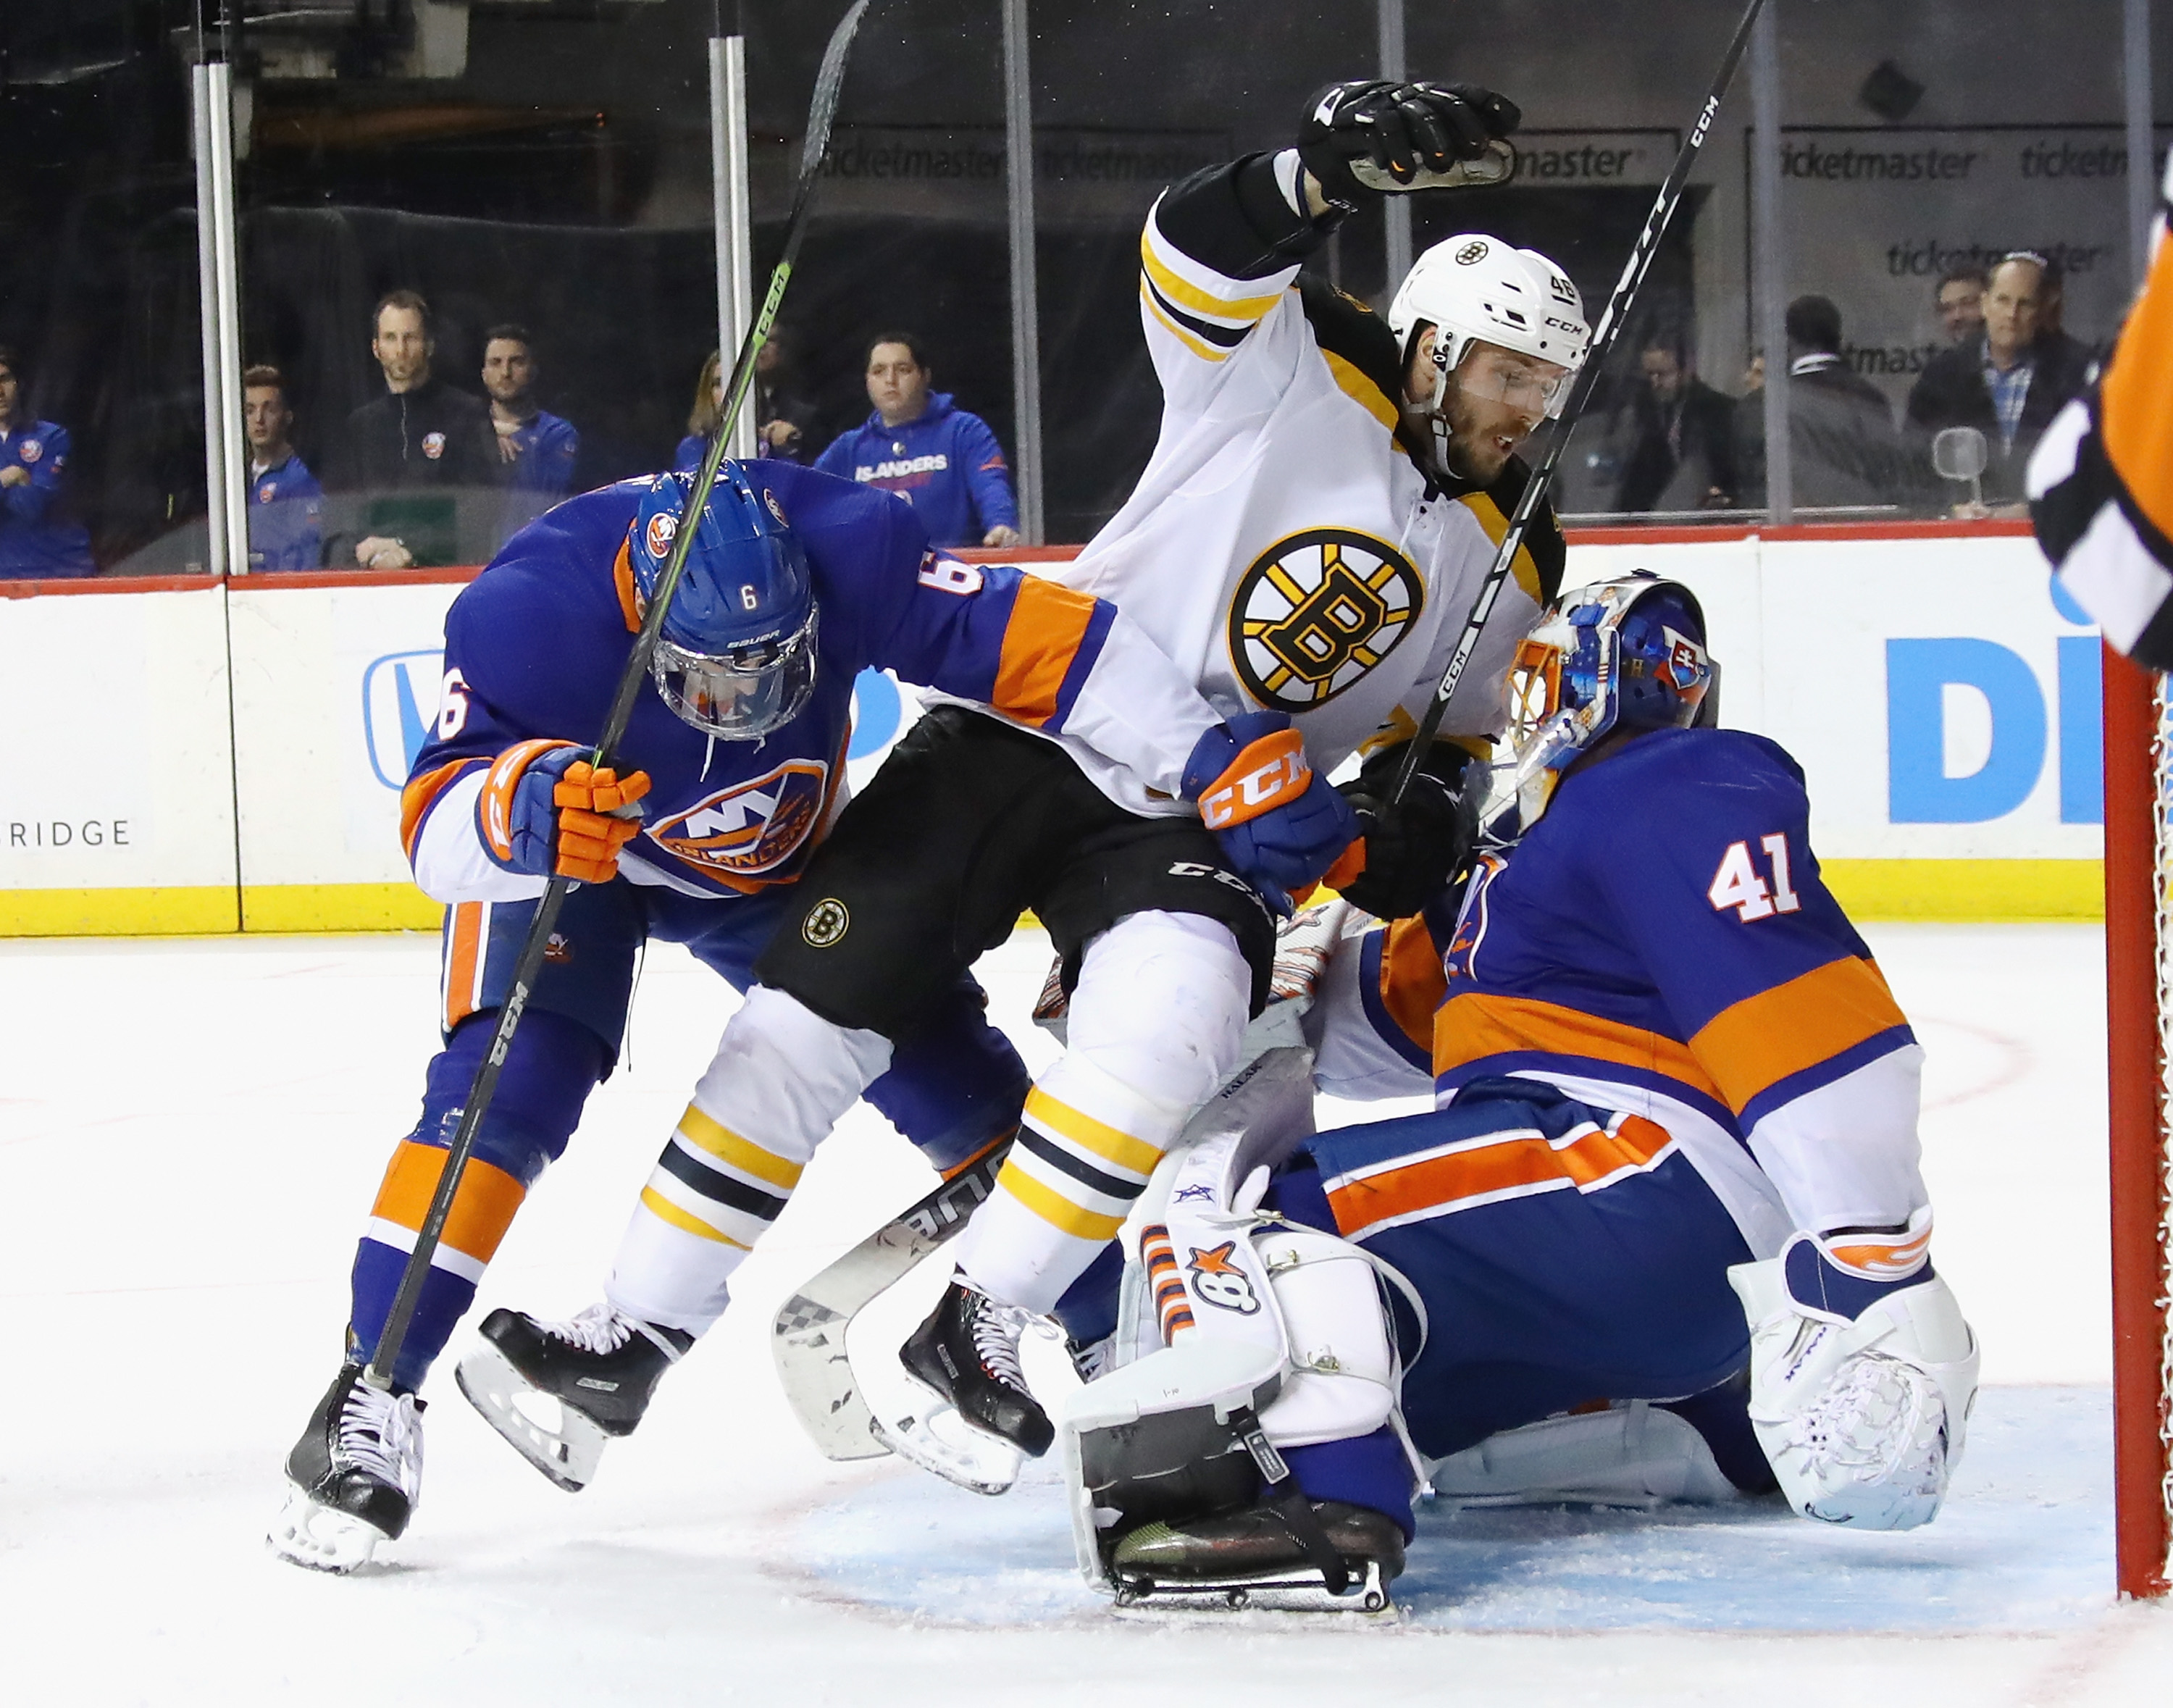 Bergeron's second hat trick of 2018 leads Bruins in rout of Islanders